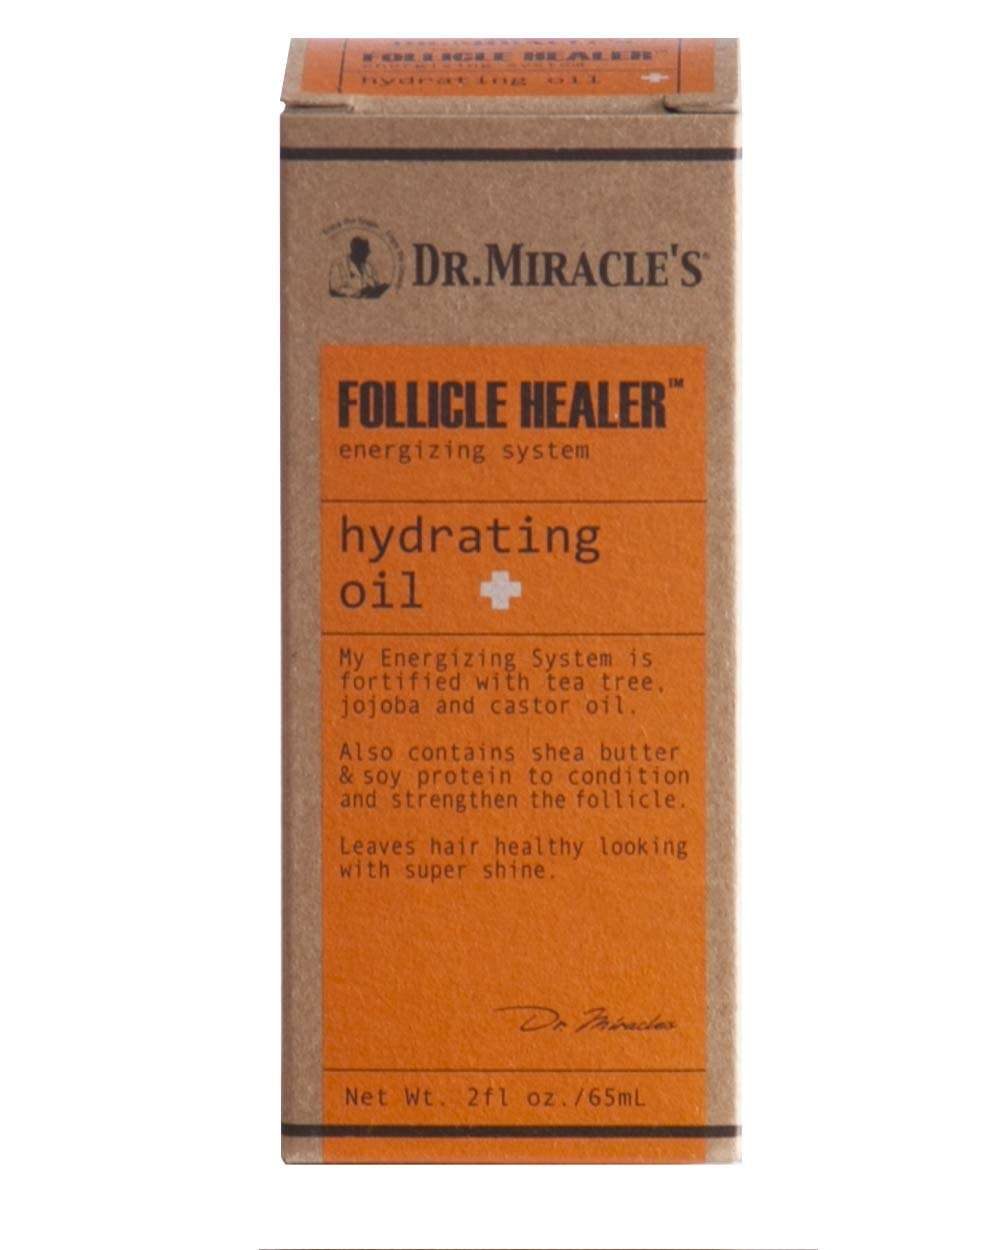 Dr. Miracles Follicle Healer Hydrating Oil 2oz (2 Pack)